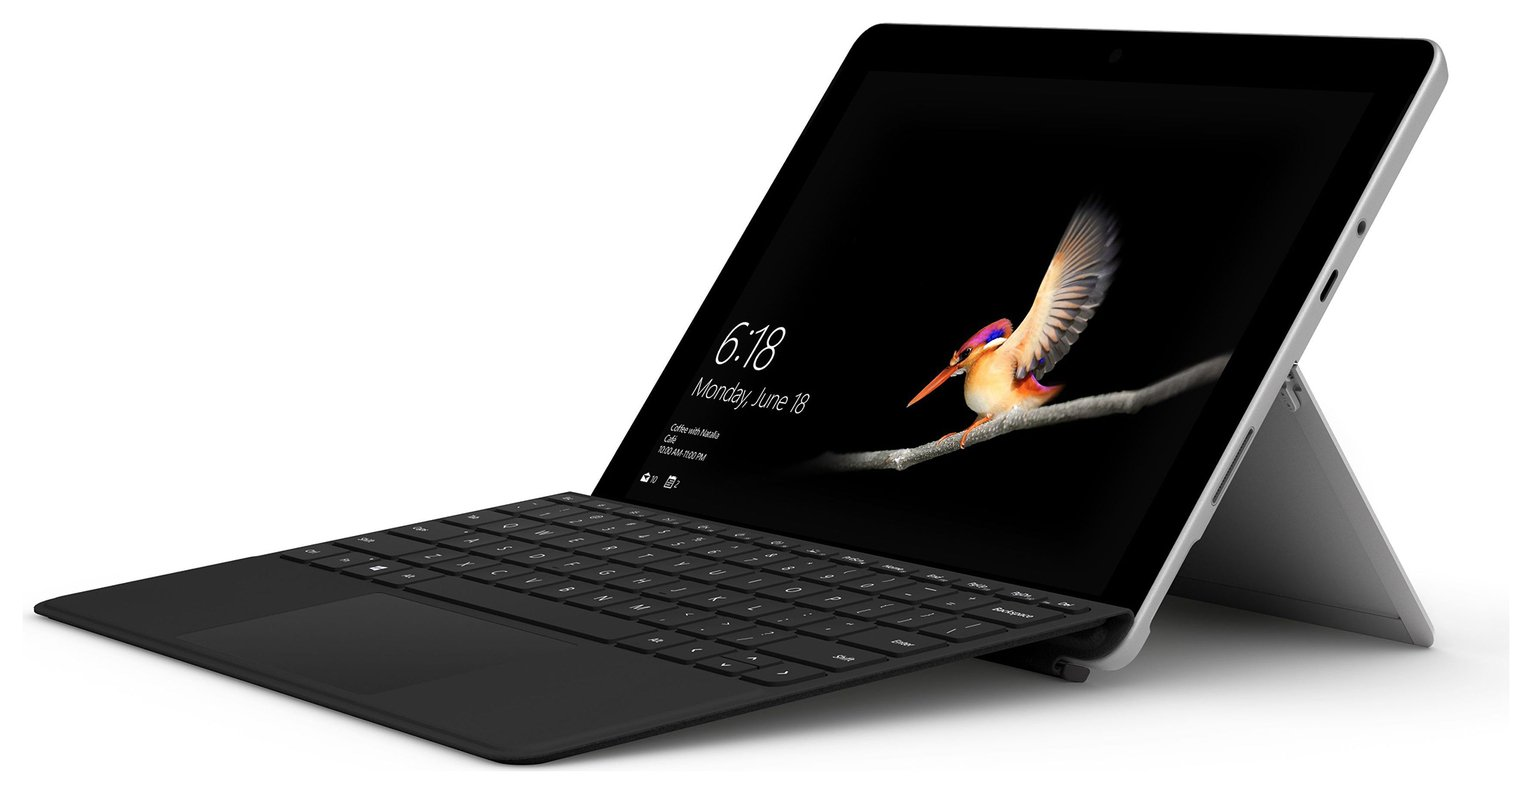 Microsoft Surface Go 8GB 128GB 2-in-1 Laptop with Type Cover from Microsoft Surface